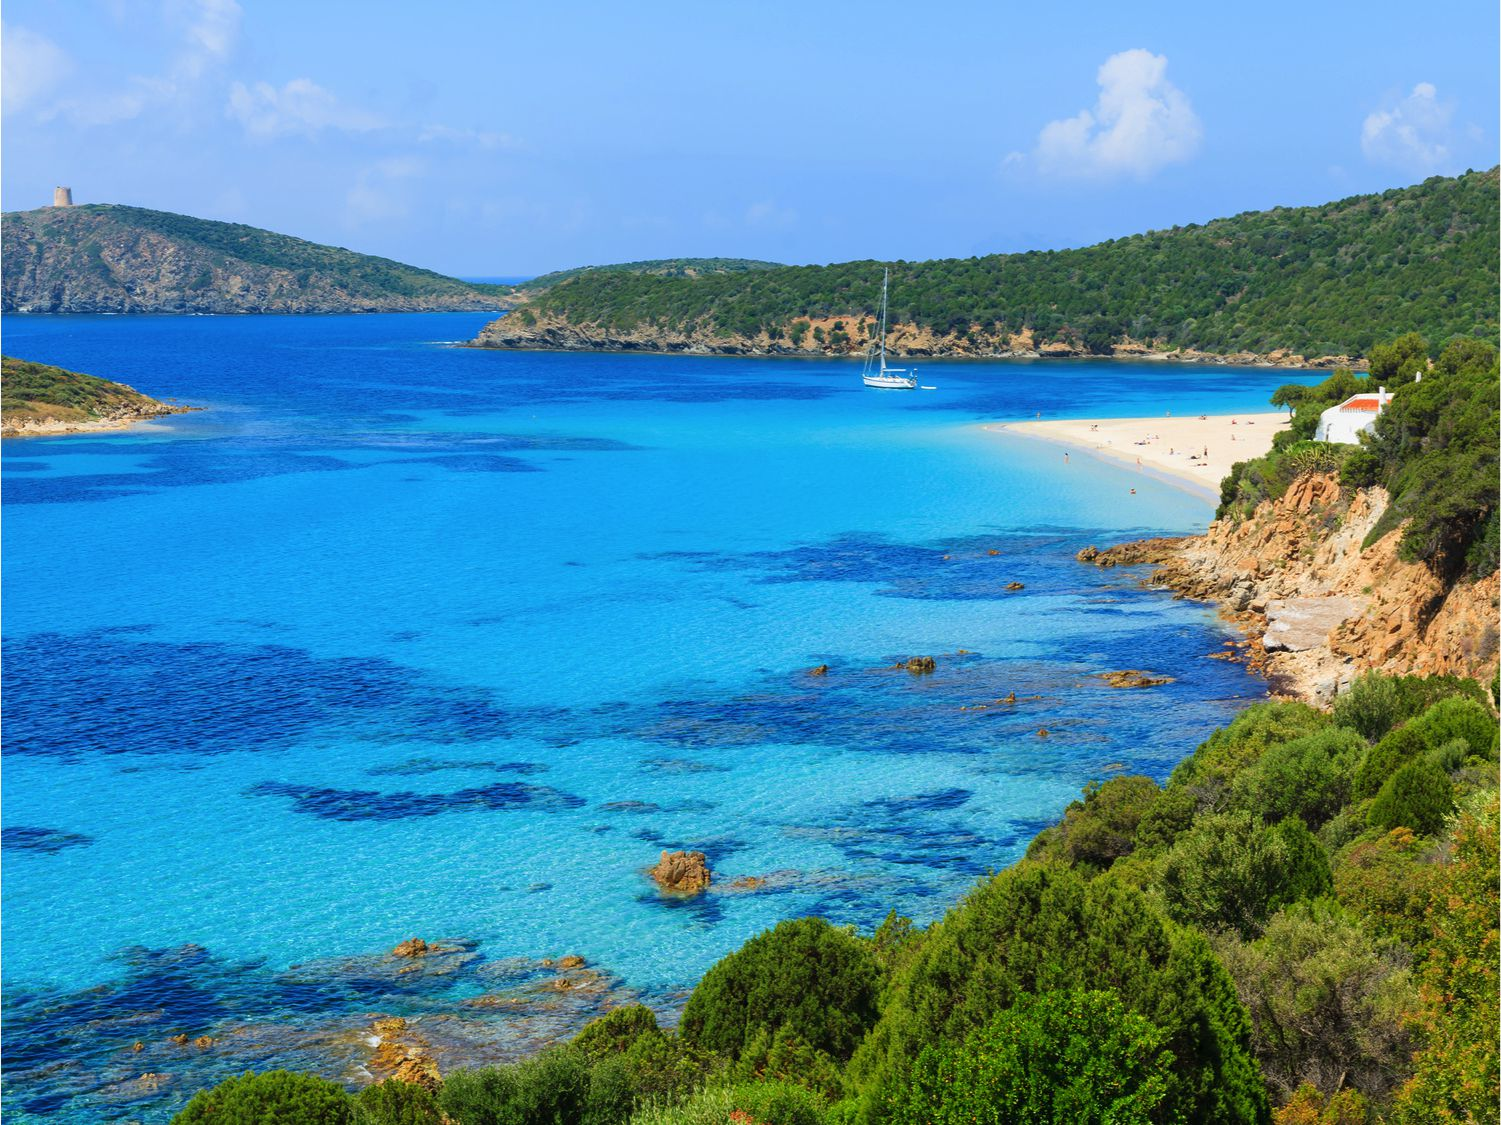 11 places to visit on a trip to sardinia in italy and why hand